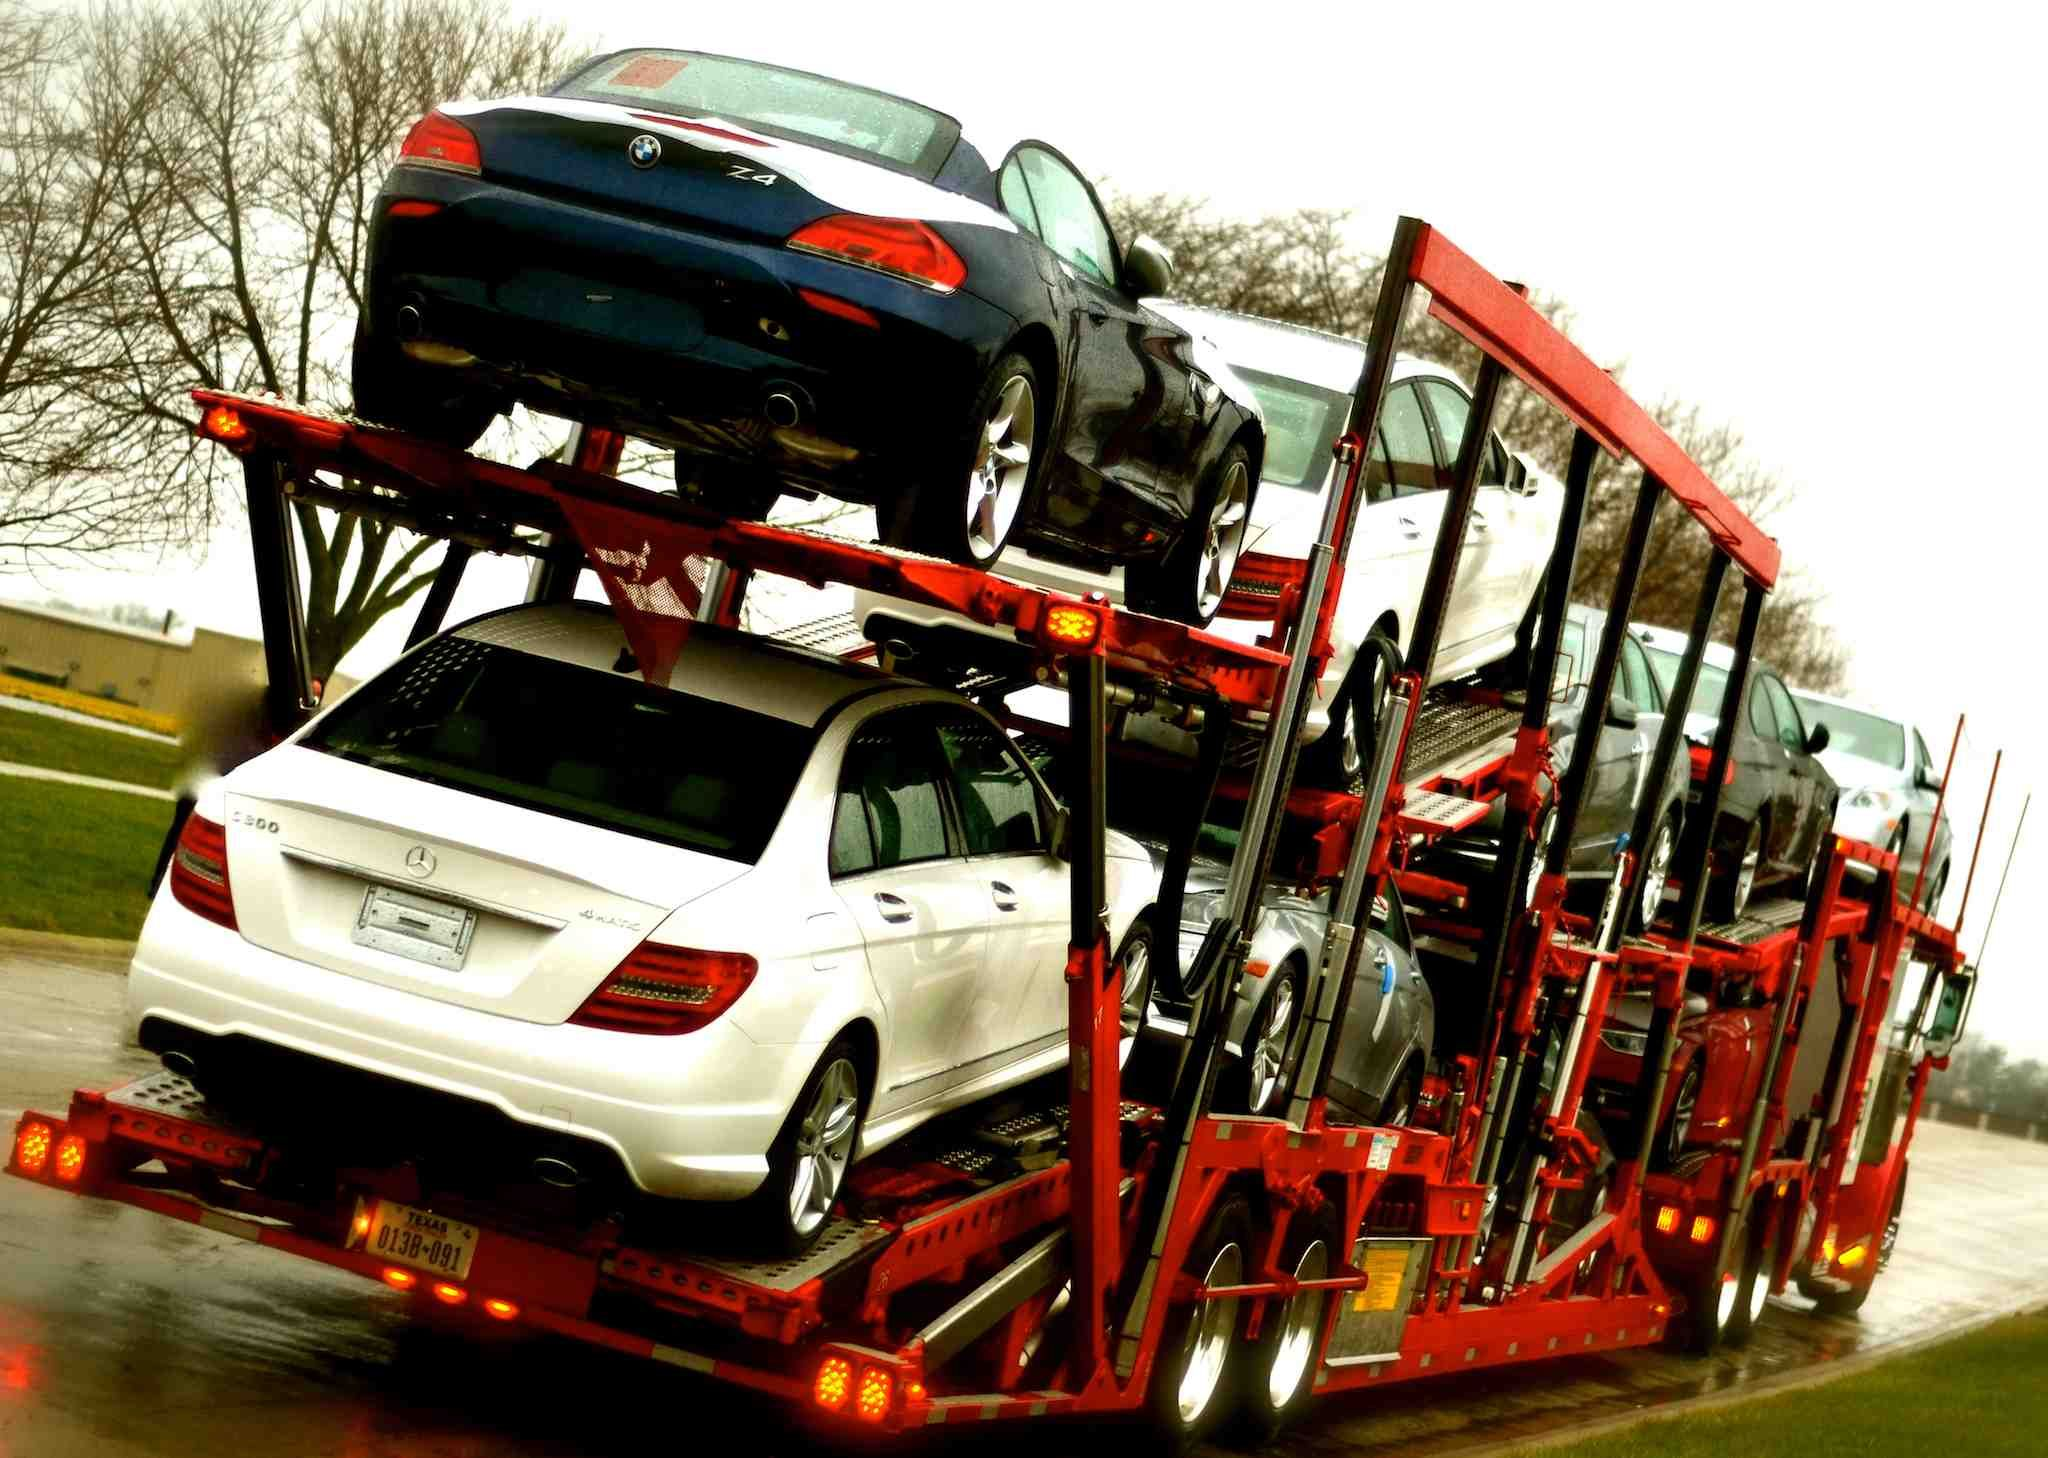 Vehicle Transport Quote 18 Best Auto Transport Images On Pinterest  Vehicles Autos And Cars